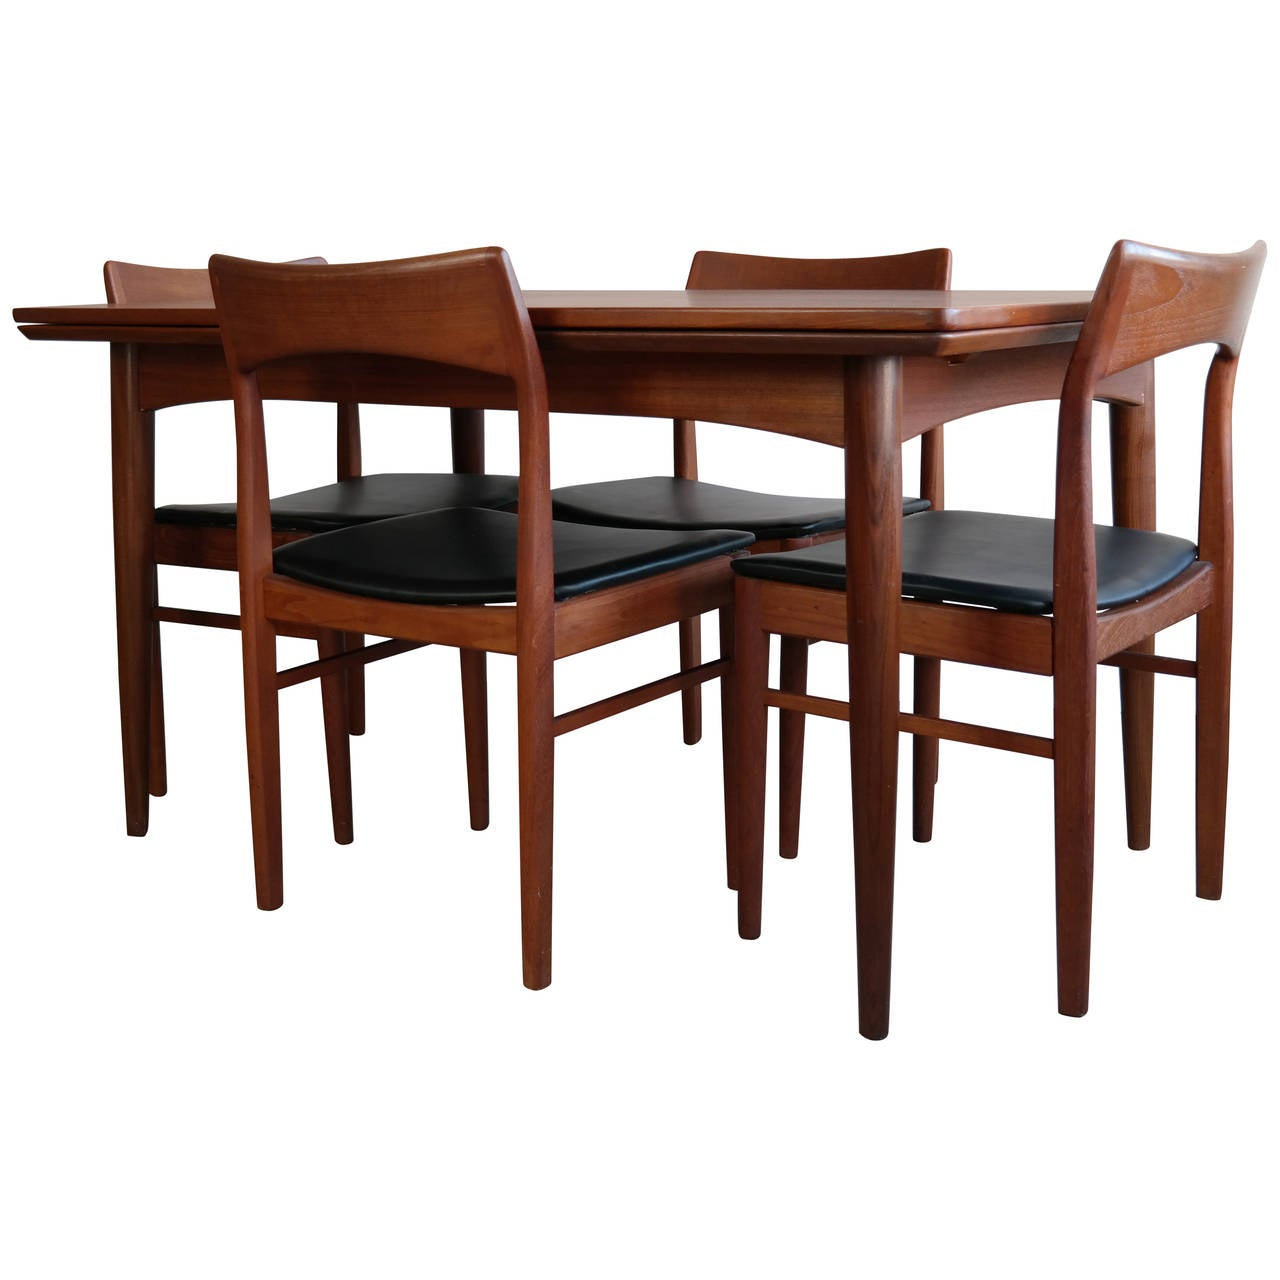 Danish modern dining set in teak at 1stdibs for Designer dinette sets